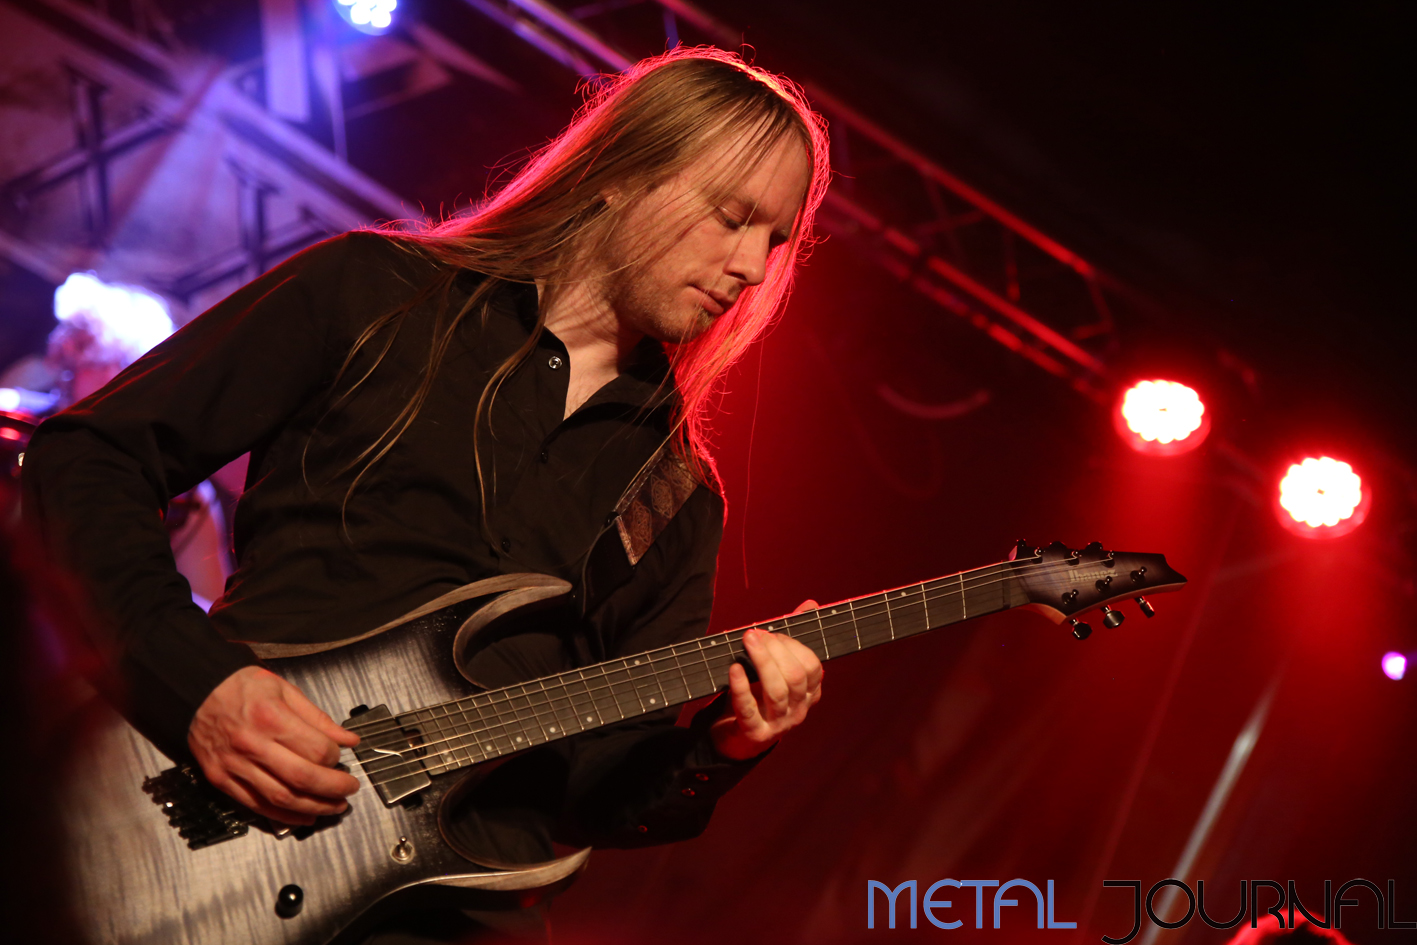 axxis 2018 - metal journal pic 2